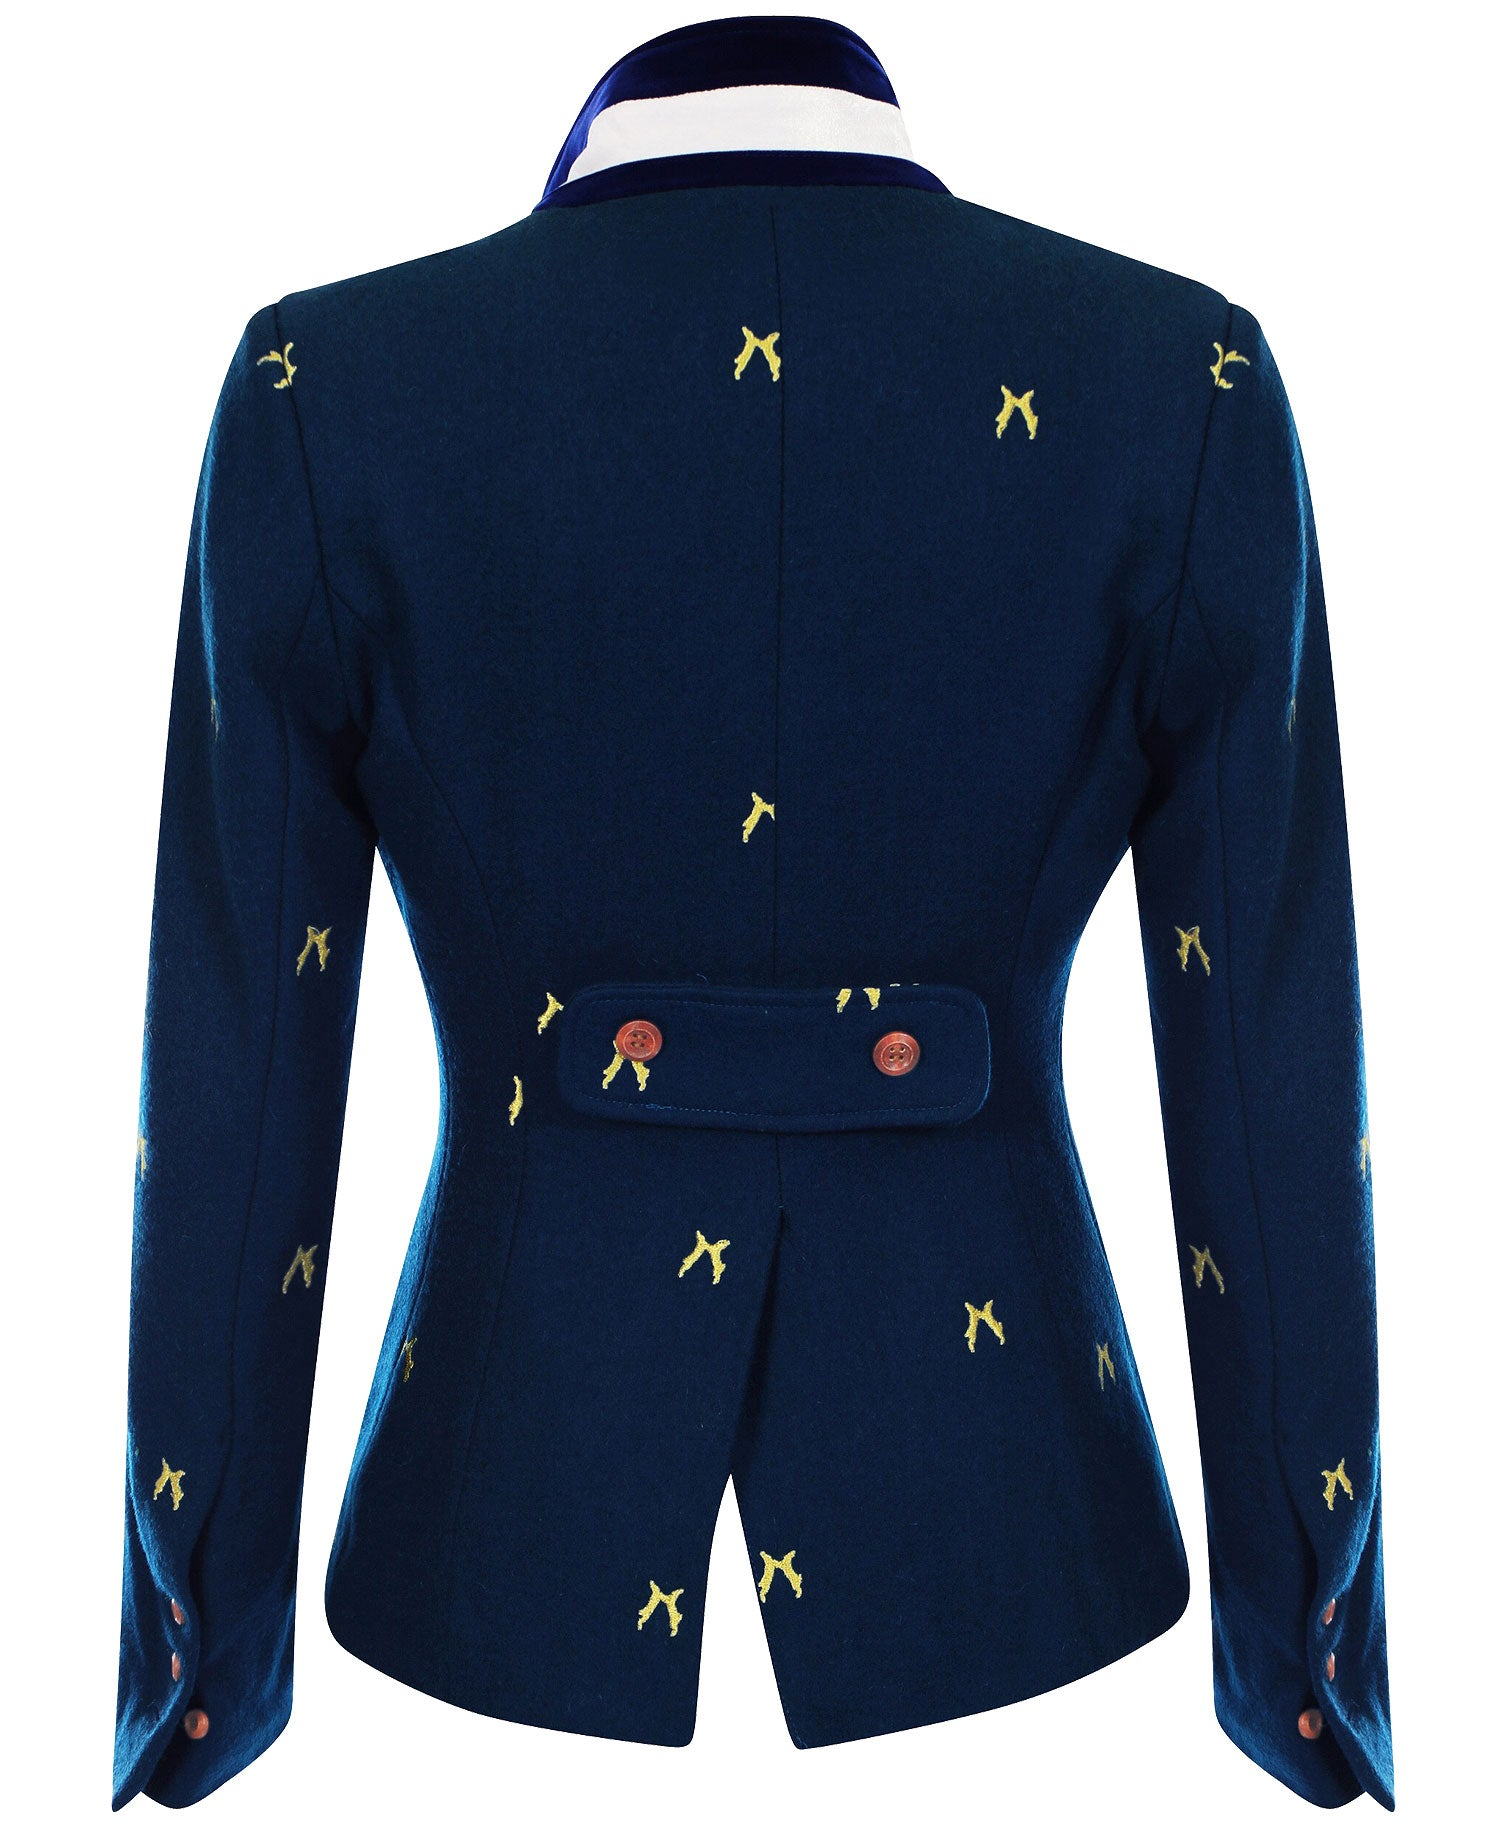 showing back vent Beauchamp Ladies Blazer by Sporting Hares